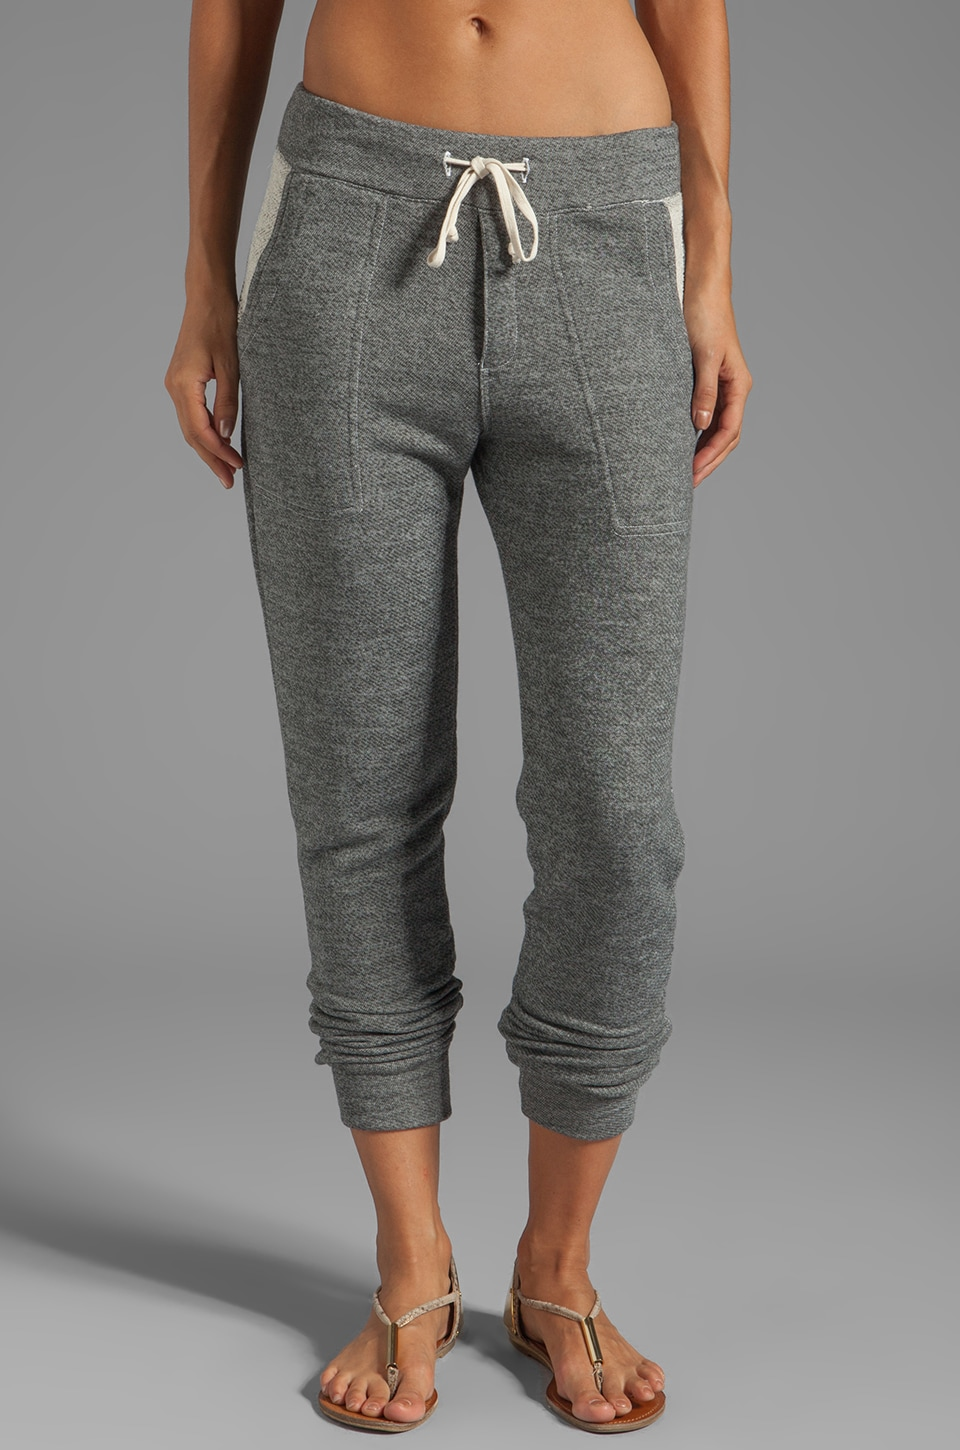 SUNDRY Slouchy Sweat Pants in Heather Grey